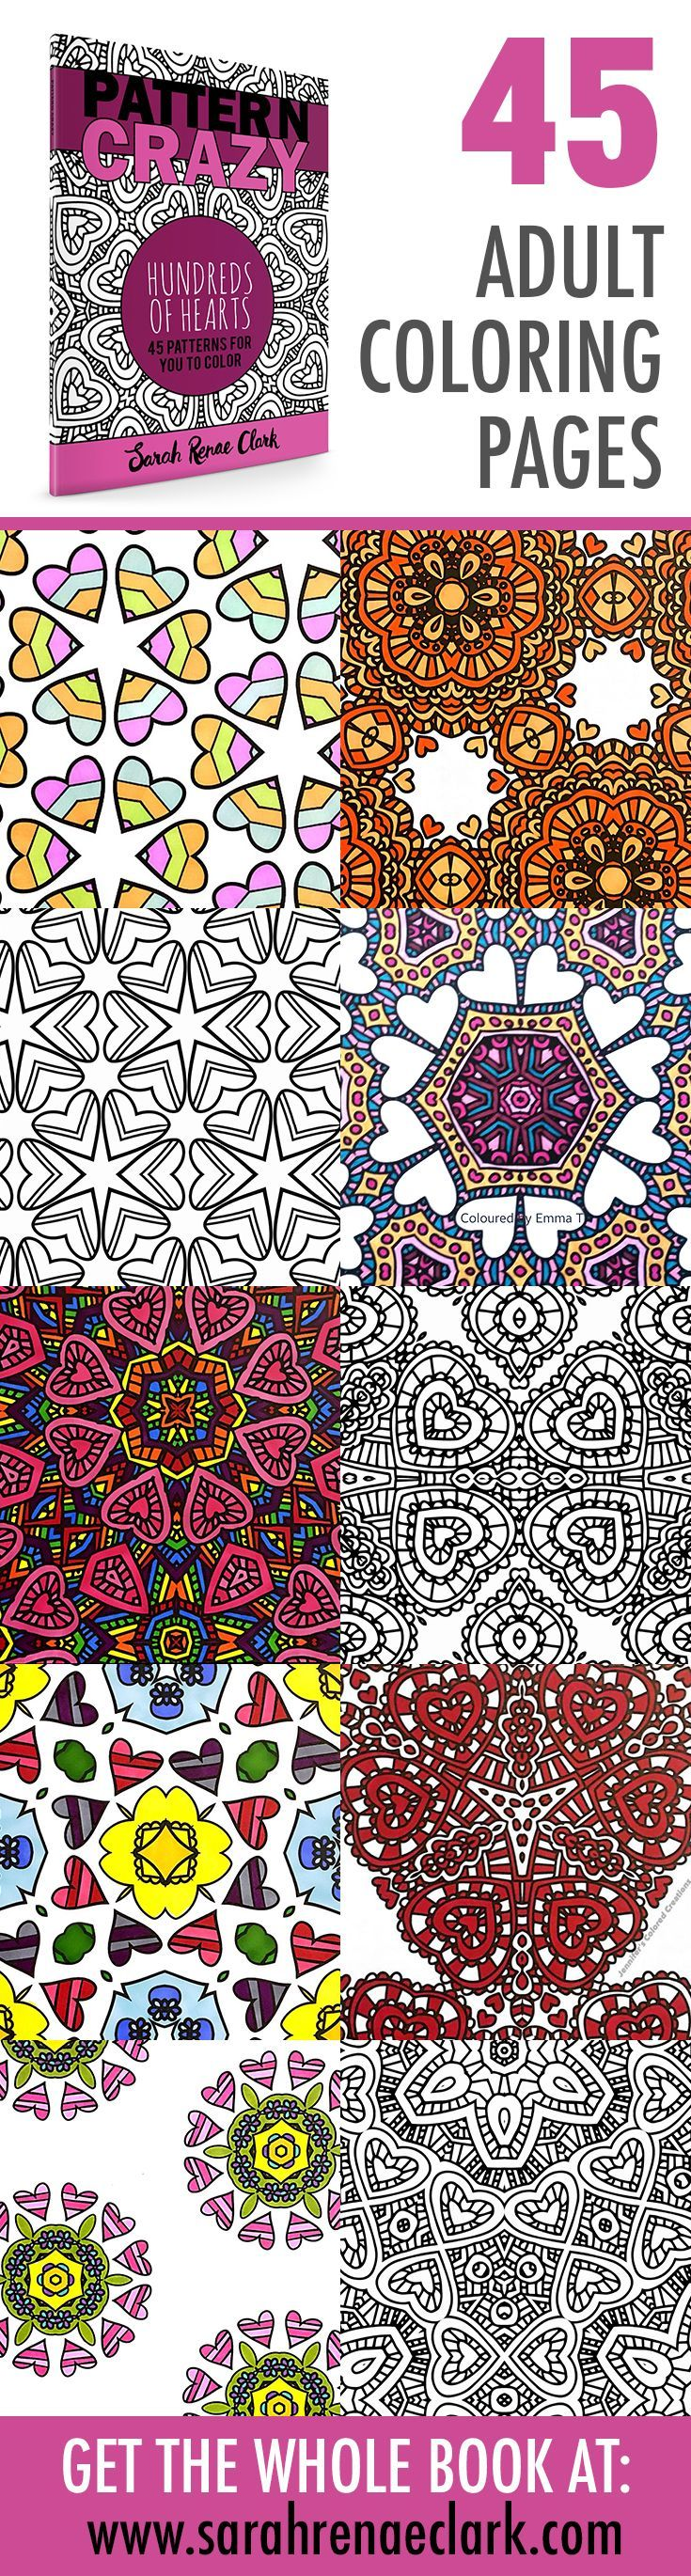 Printable Adult Coloring Book | Pattern Crazy: Hundreds of Hearts by Sarah Renae Clark | 45 patterns to color | Get it at www.sarahrenaeclark.com or on Amazon | adult coloring, coloring for adults, coloring for grown ups, coloring pages, printable coloring pages, heart pattern coloring pages, digital colouring book